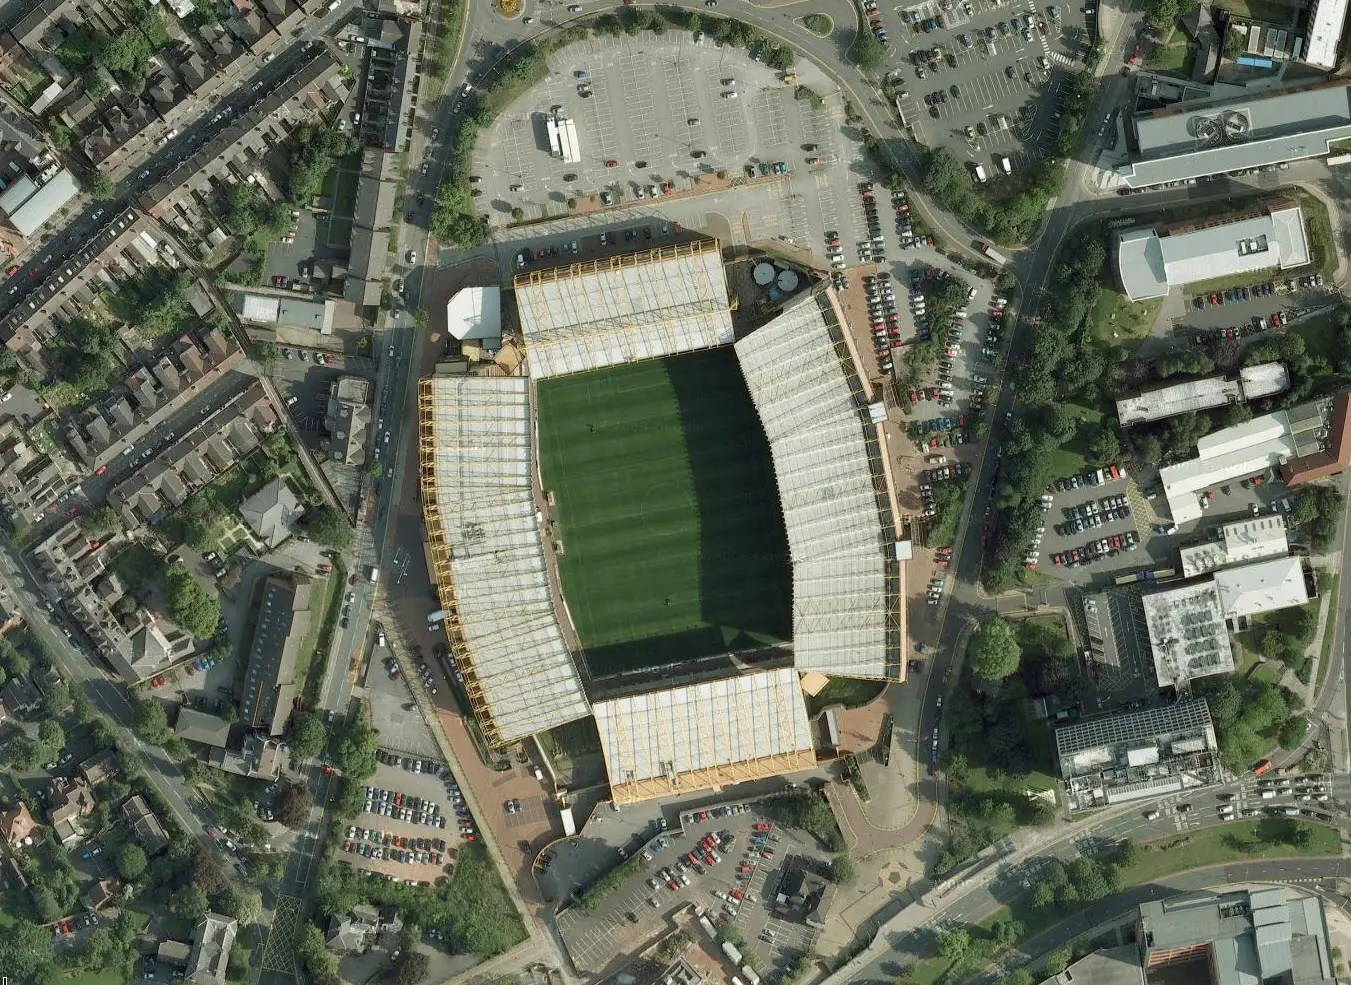 Take A Birds Eye View Tour Of The English Premier League